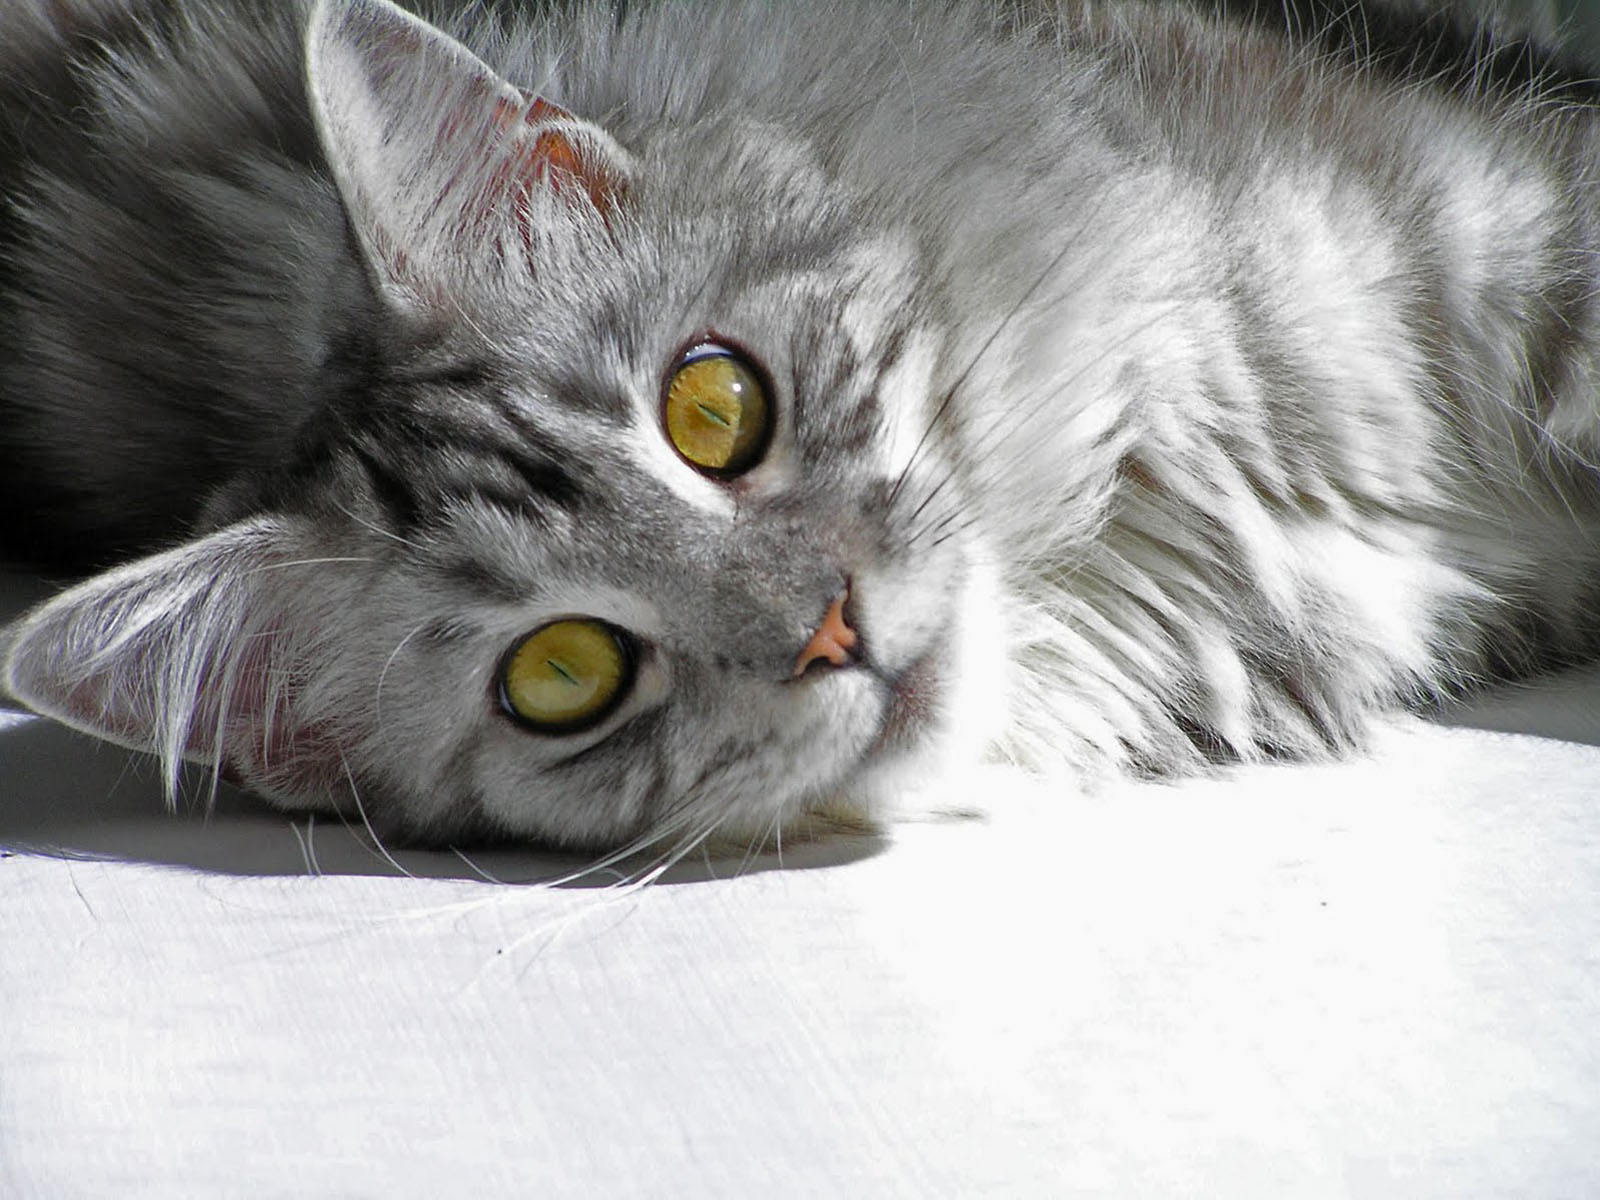 Cute Pikachu Hd Wallpapers Wallpapers Domestic Cat Maine Coon Silver